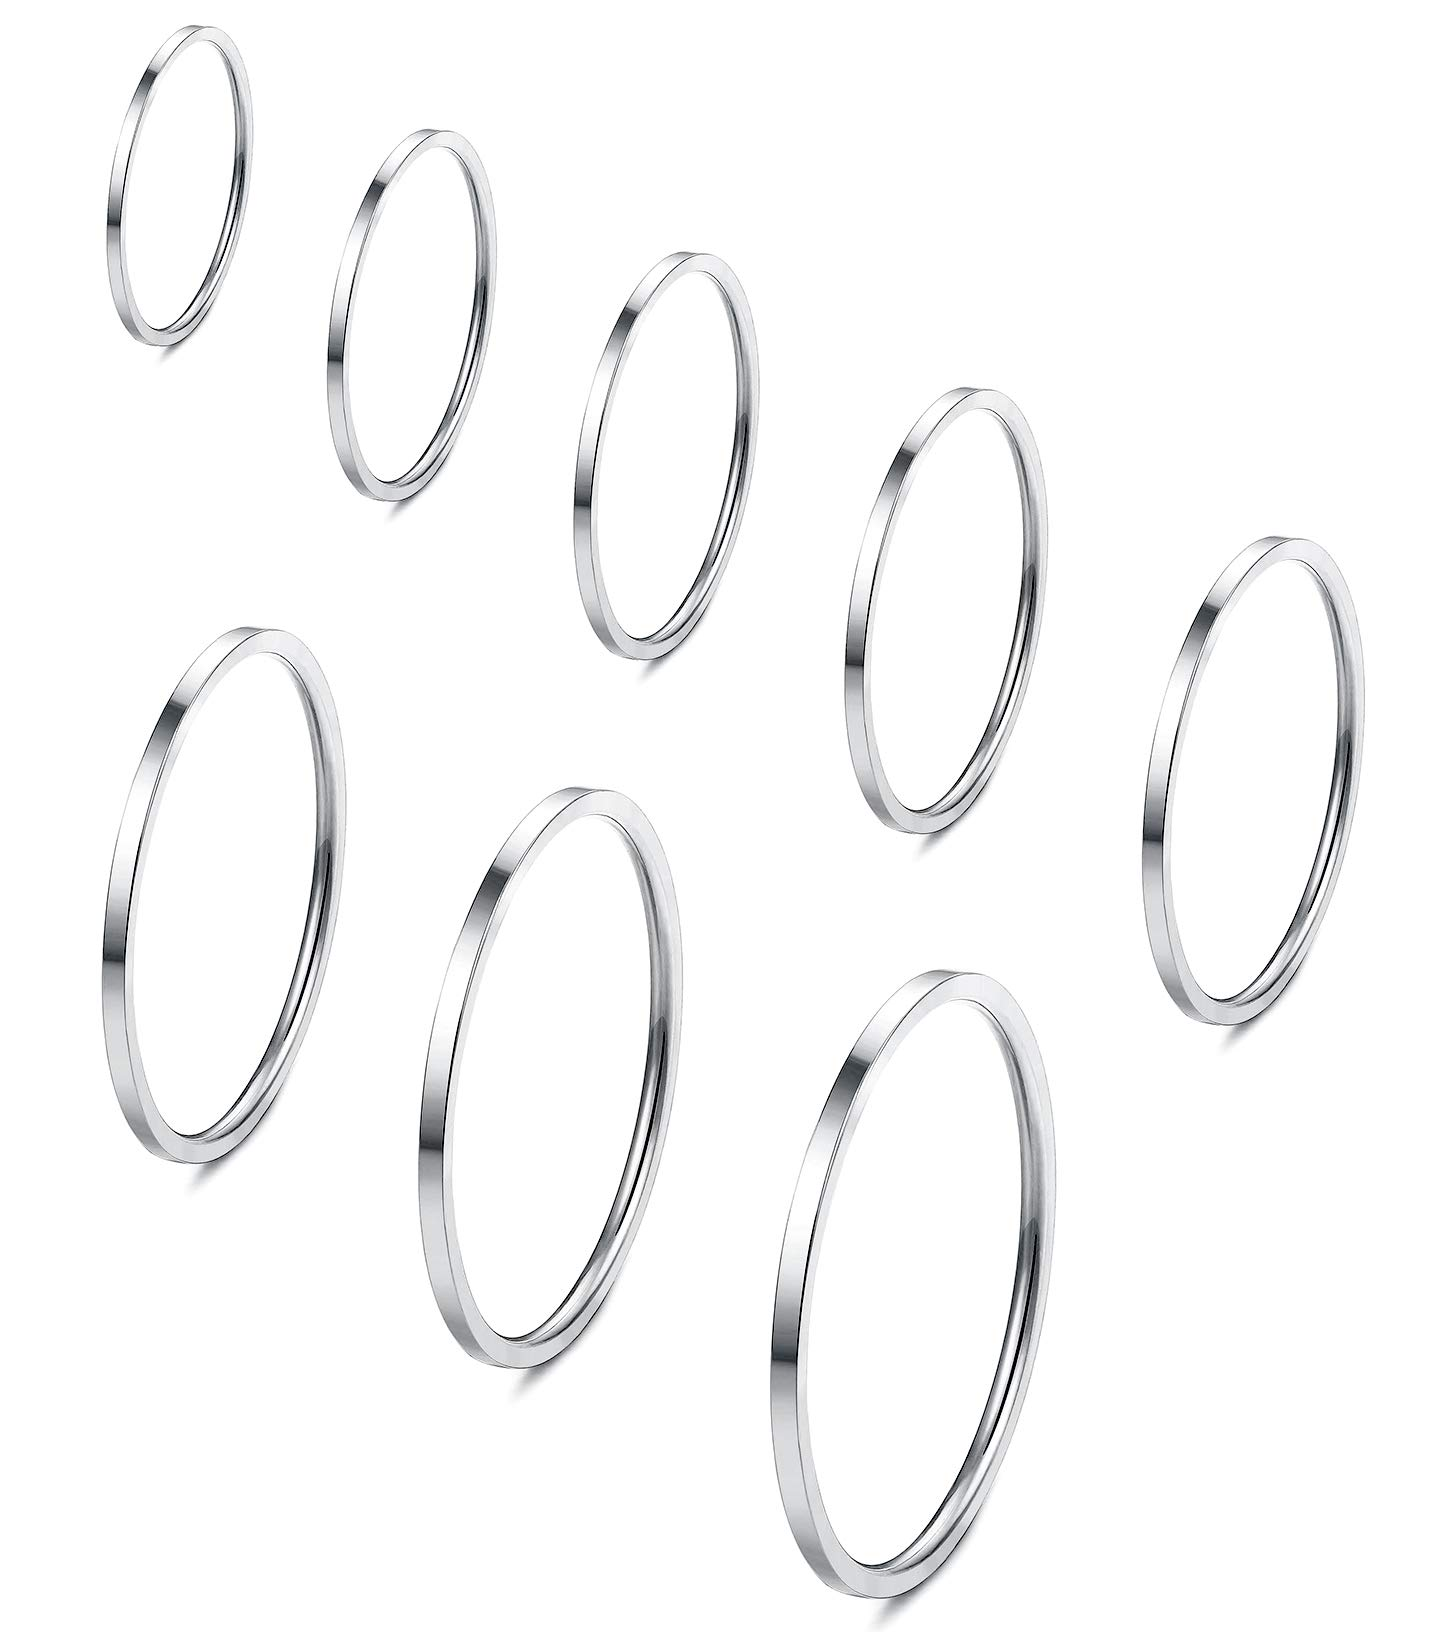 Fiasaso 8 Pcs 1mm Stainless Steel Stacking Rings Knuckle Rings Plain Rings Midi Rings Comfort Fit Size 2 to 9